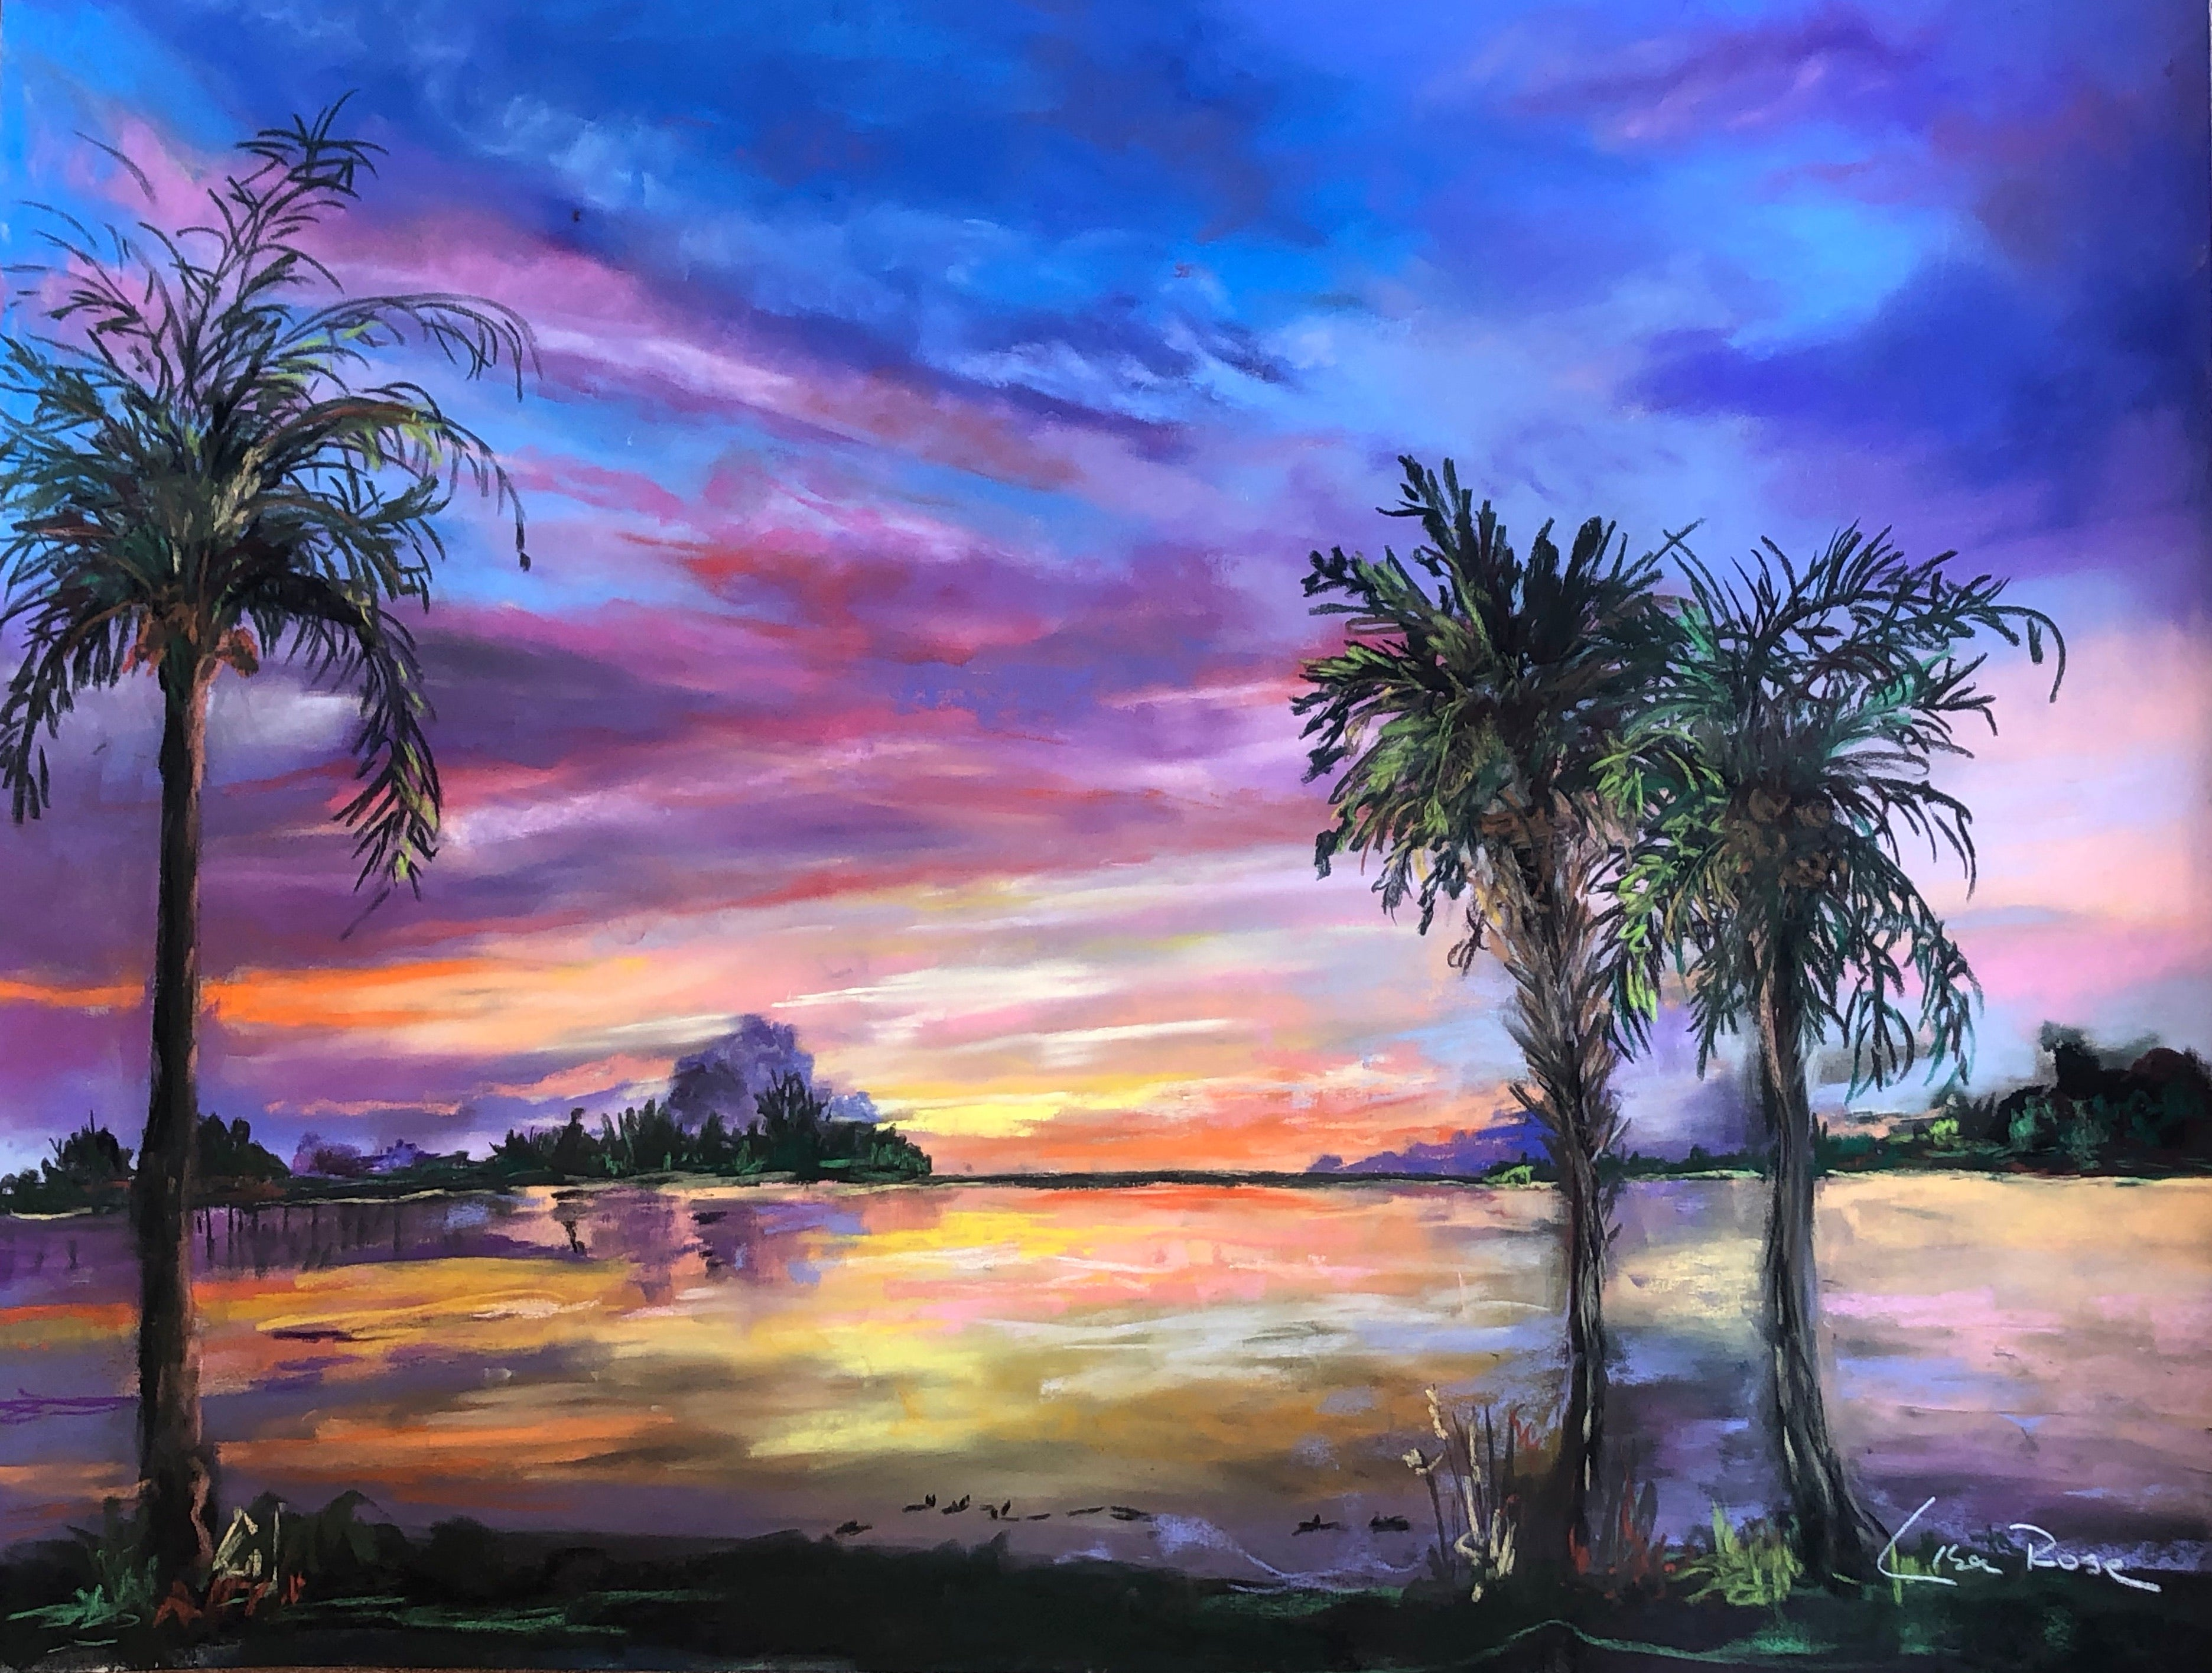 Sunrise 2 at Old Palm - Lisa Rose Fine Art